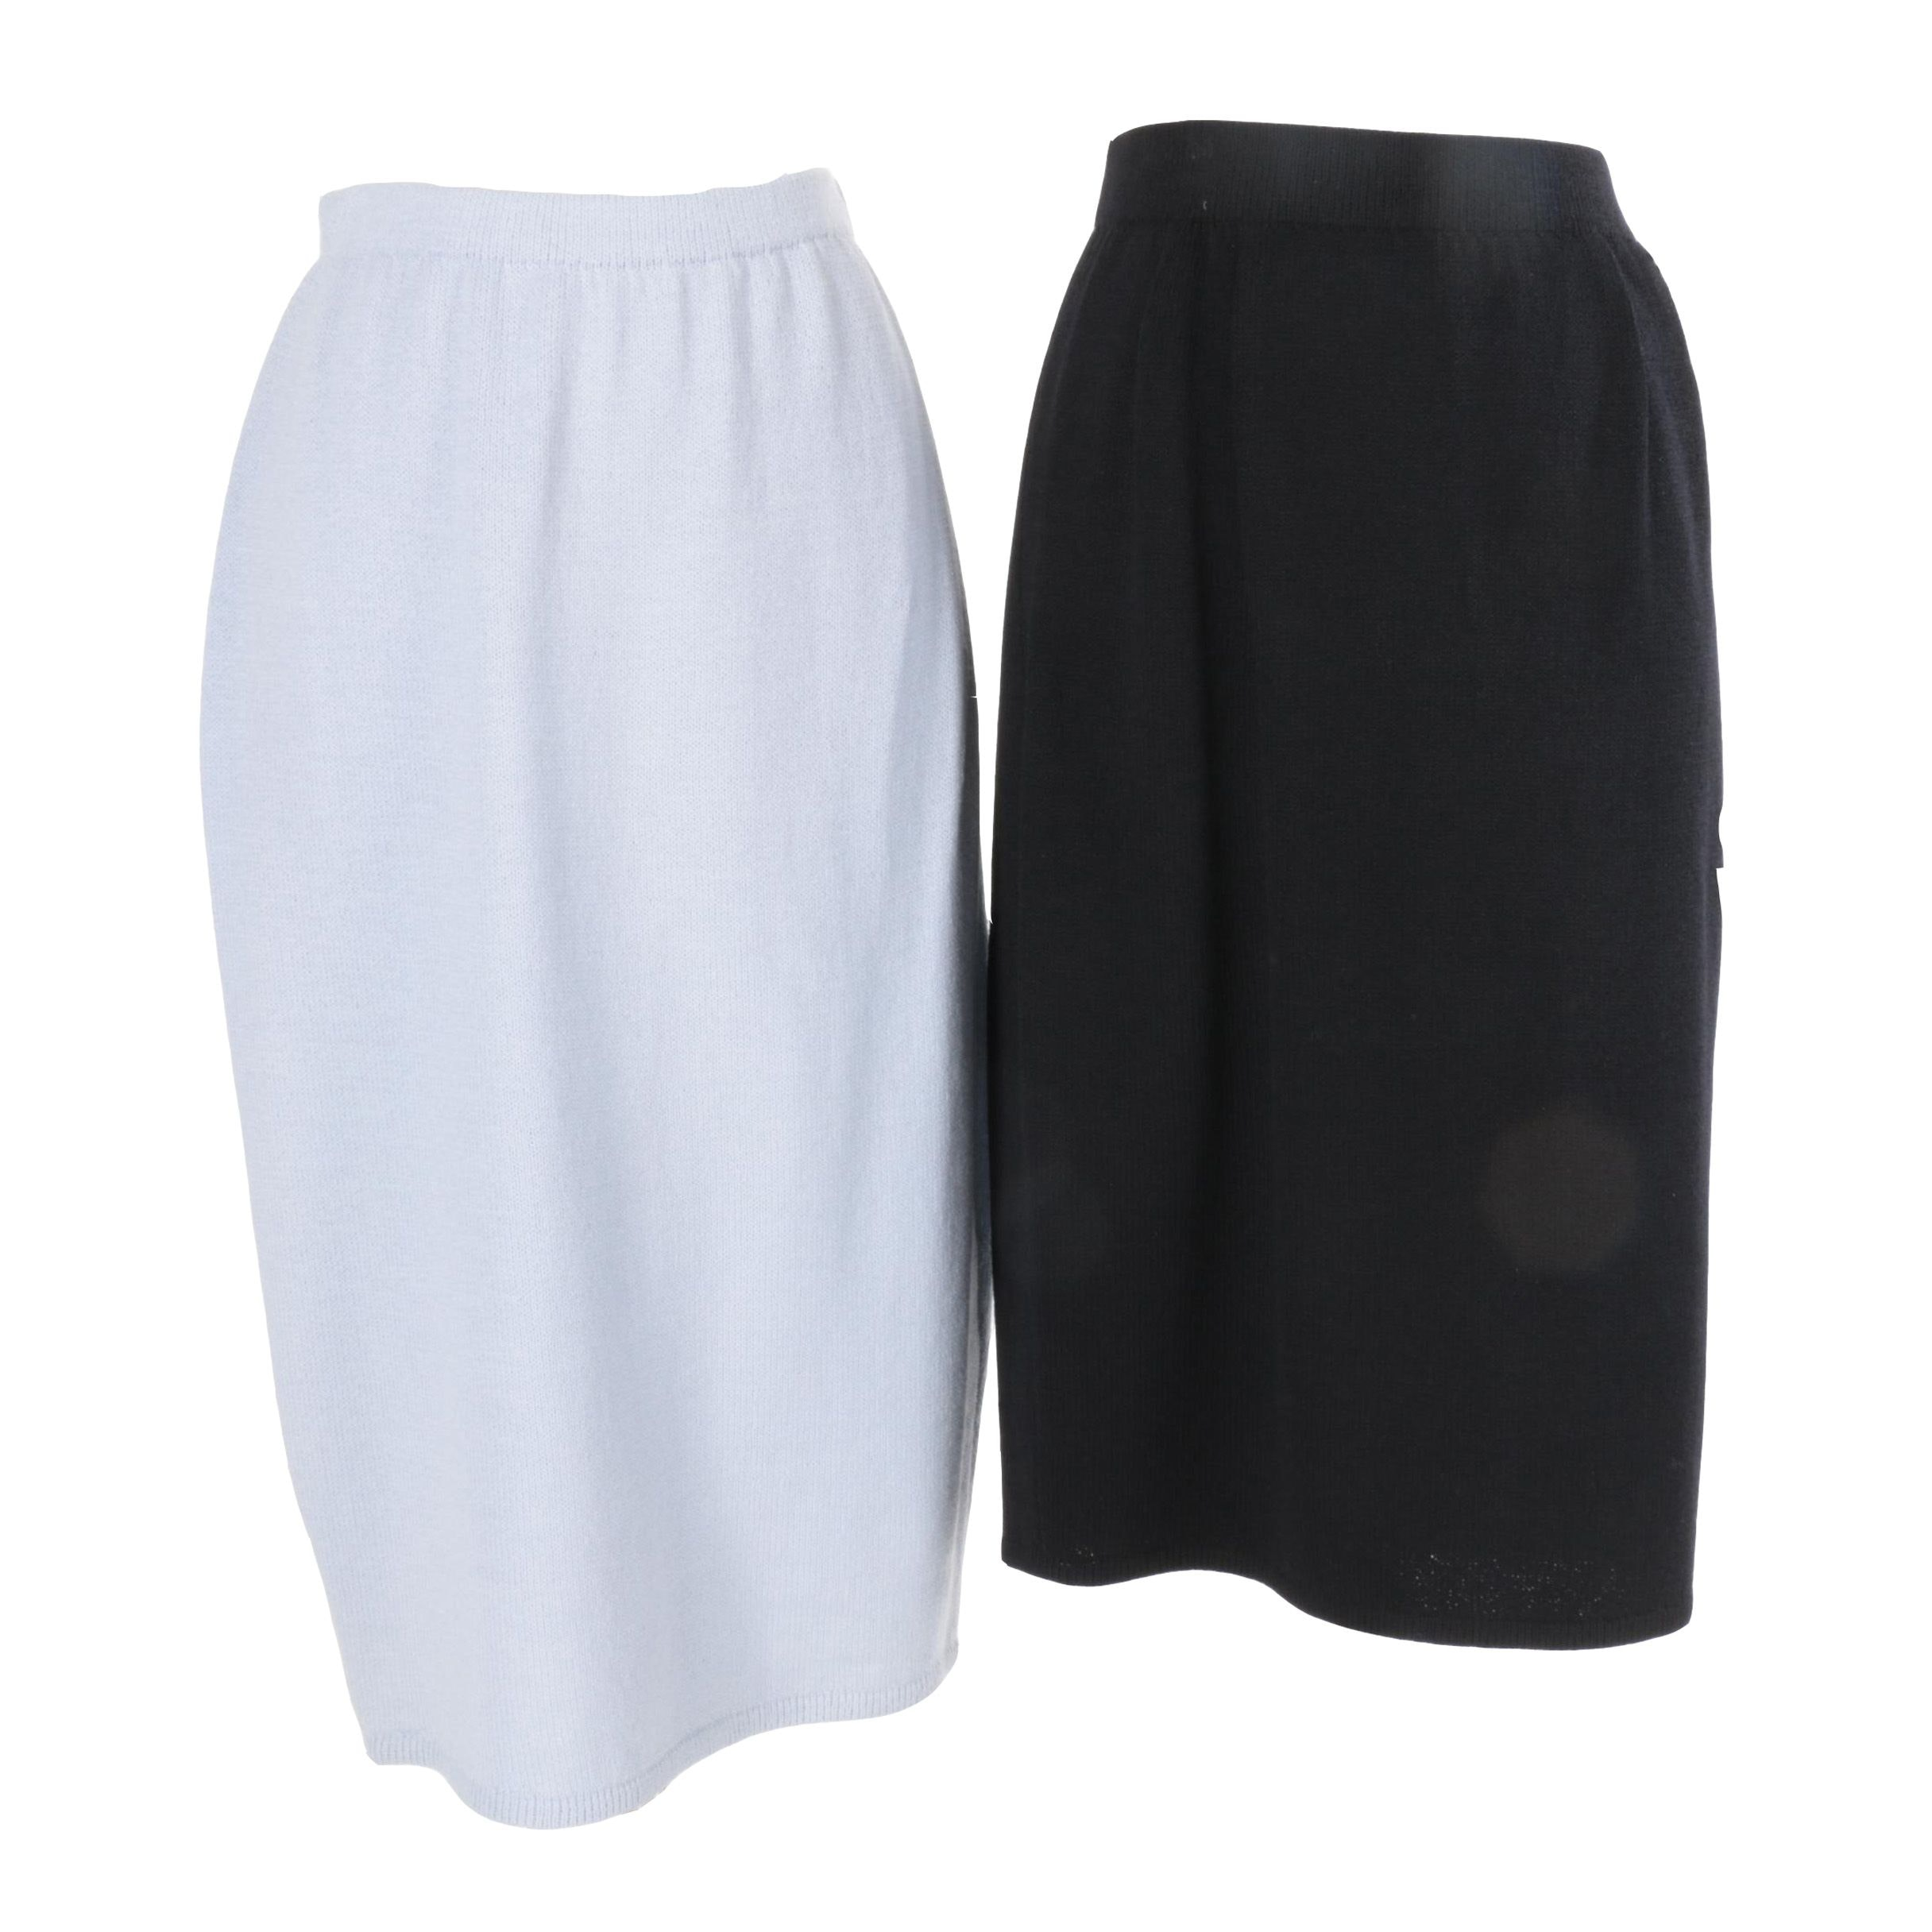 St. John Knit Skirts